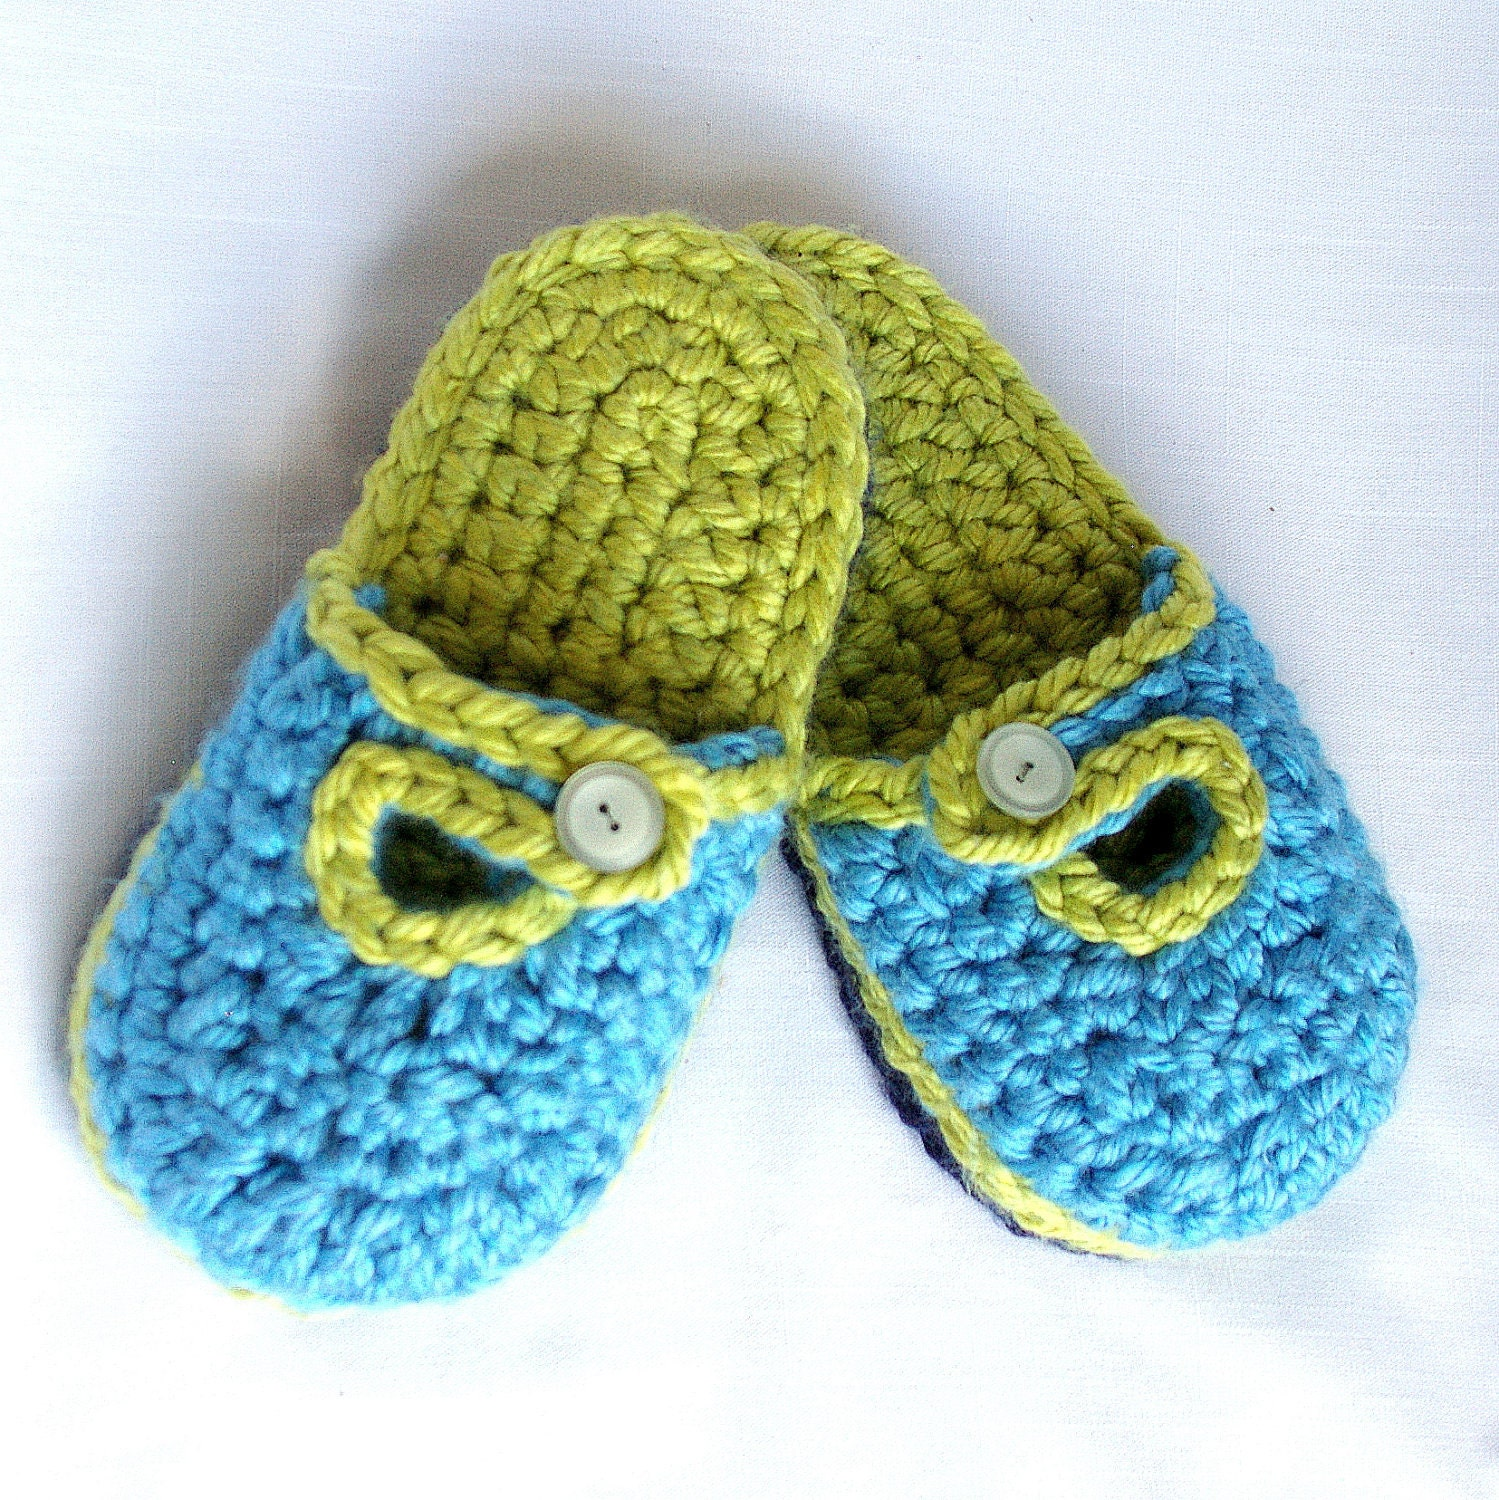 CROCHET CHILDRENS SLIPPERS PATTERNS Crochet Patterns